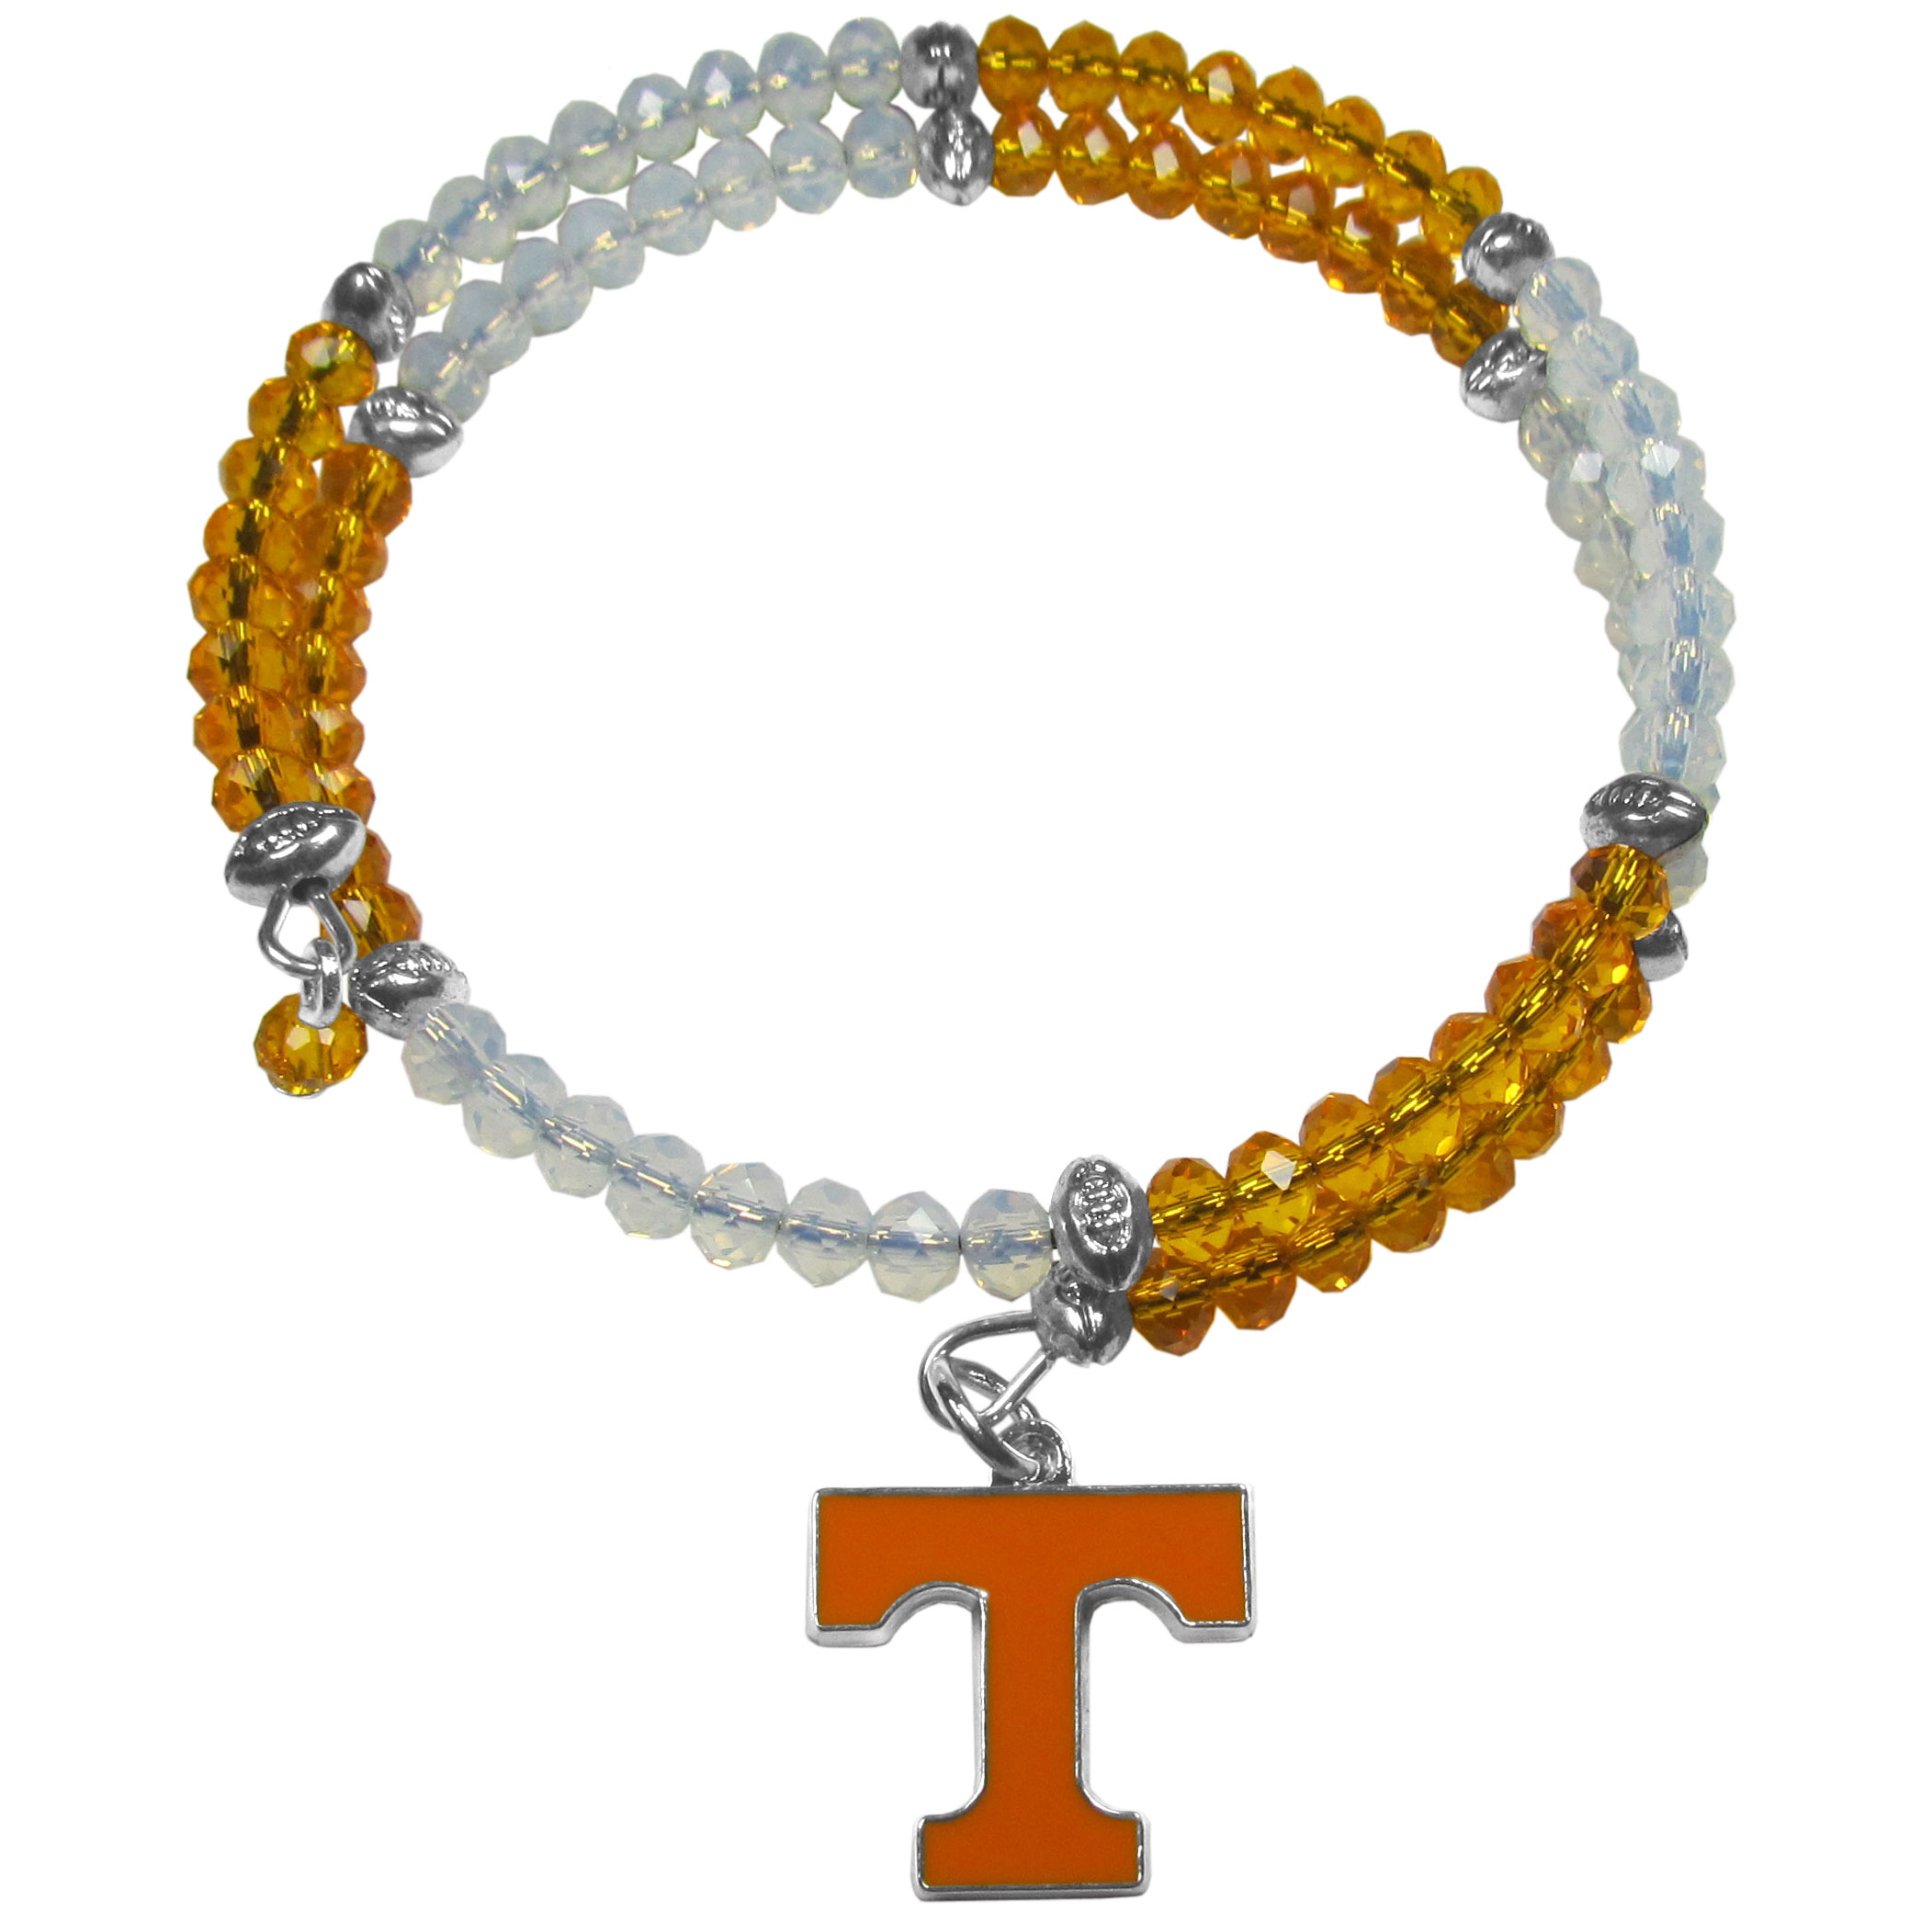 Tennessee Volunteers Crystal Memory Wire Bracelet - Our Tennessee Volunteers memory wire crystal bracelet is trendy way to show off your love of the game. The double wrap bracelet is completely covered in 4 mm crystals that are broken up with adorable football beads creating a designer look with a sporty twist. The bracelet features a fully cast, metal team charm that has expertly enameled team colors. This fashion jewelry piece is a must-have for the die-hard fan that chic look that can dress up any outfit.